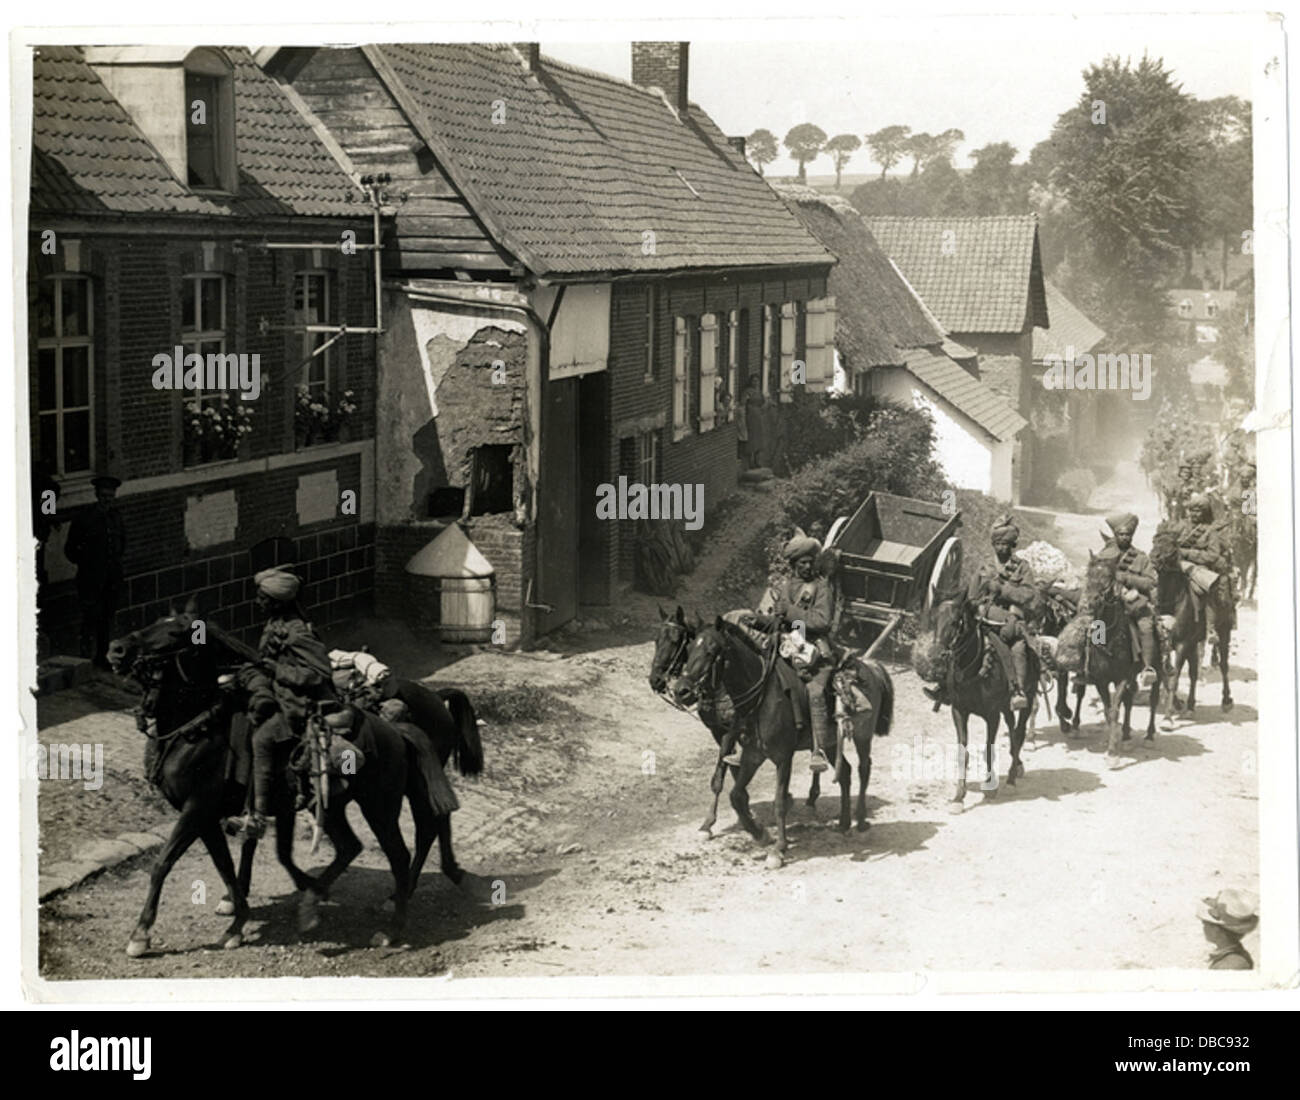 Indian cavalry marching through a French village near Fenges (Photo 24-212) - Stock Image